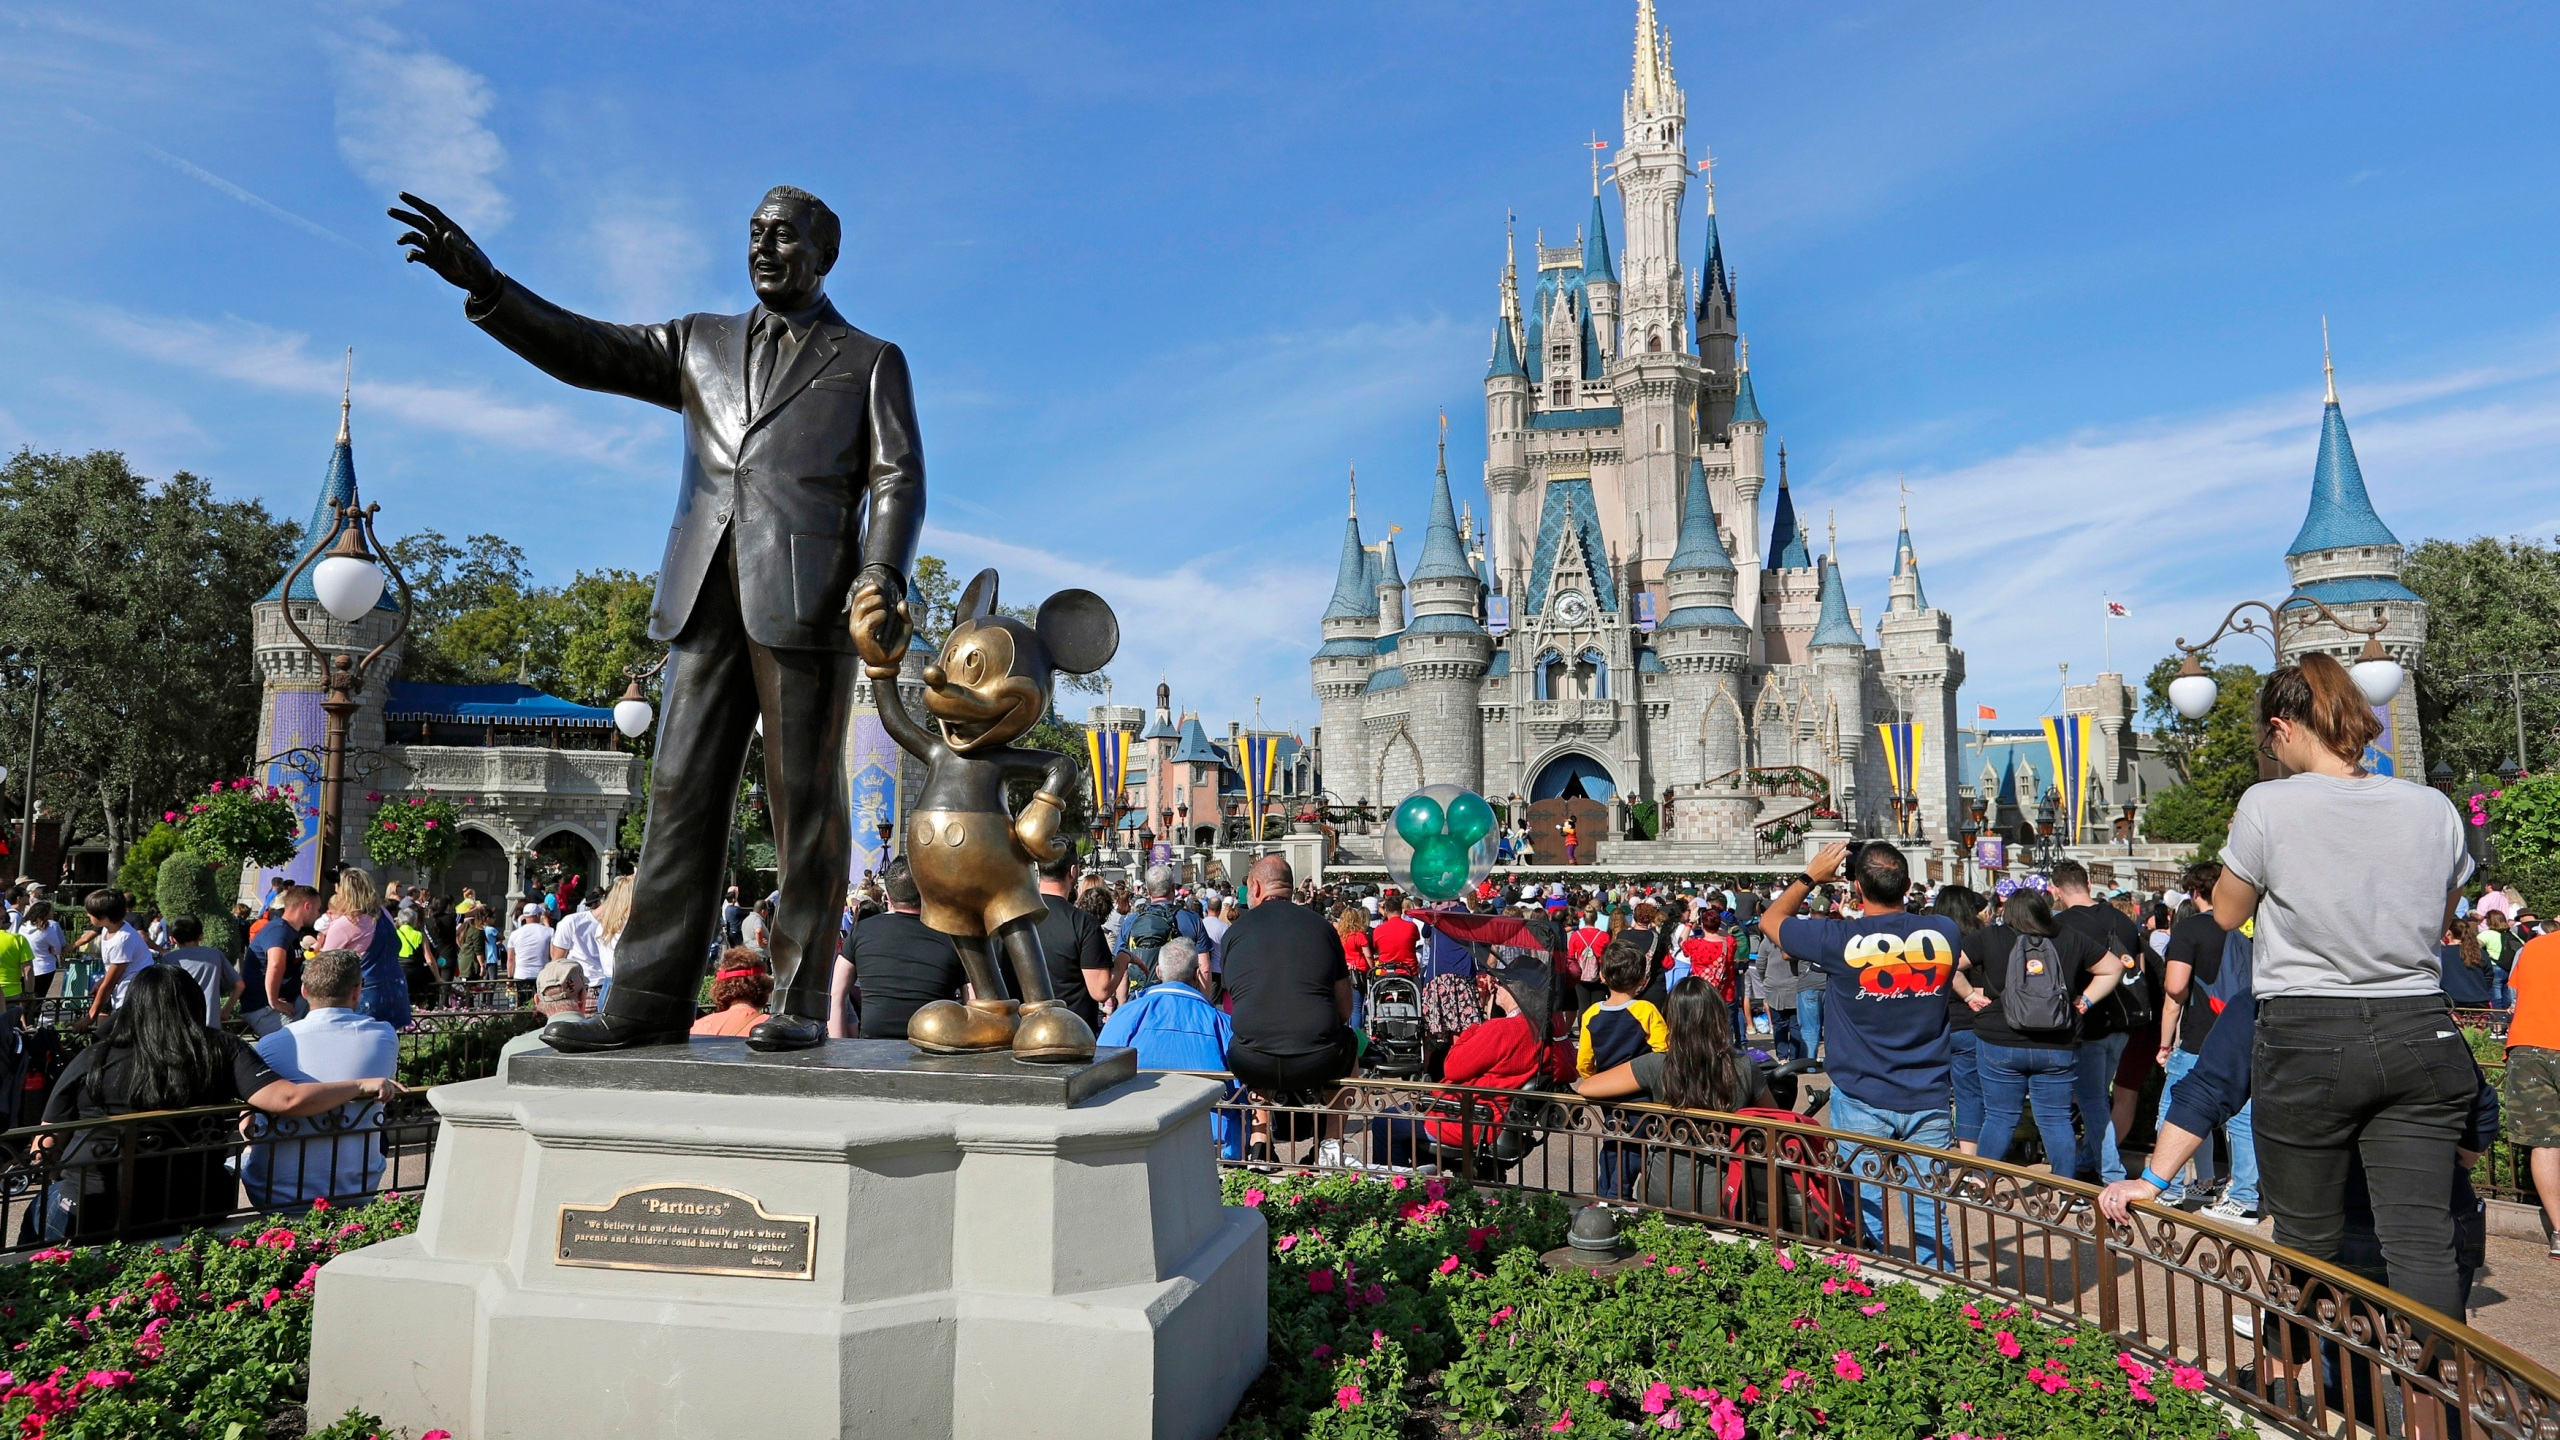 In this Jan. 9, 2019 photo, guests watch a show near a statue of Walt Disney and Micky Mouse in front of the Cinderella Castle at the Magic Kingdom at Walt Disney World in Lake Buena Vista, part of the Orlando area in Fla. SeaWorld and Universal Orlando reopened earlier June 2020, while Disney plans to reopen in phases starting July 11, 2020.(AP Photo/John Raoux, File)